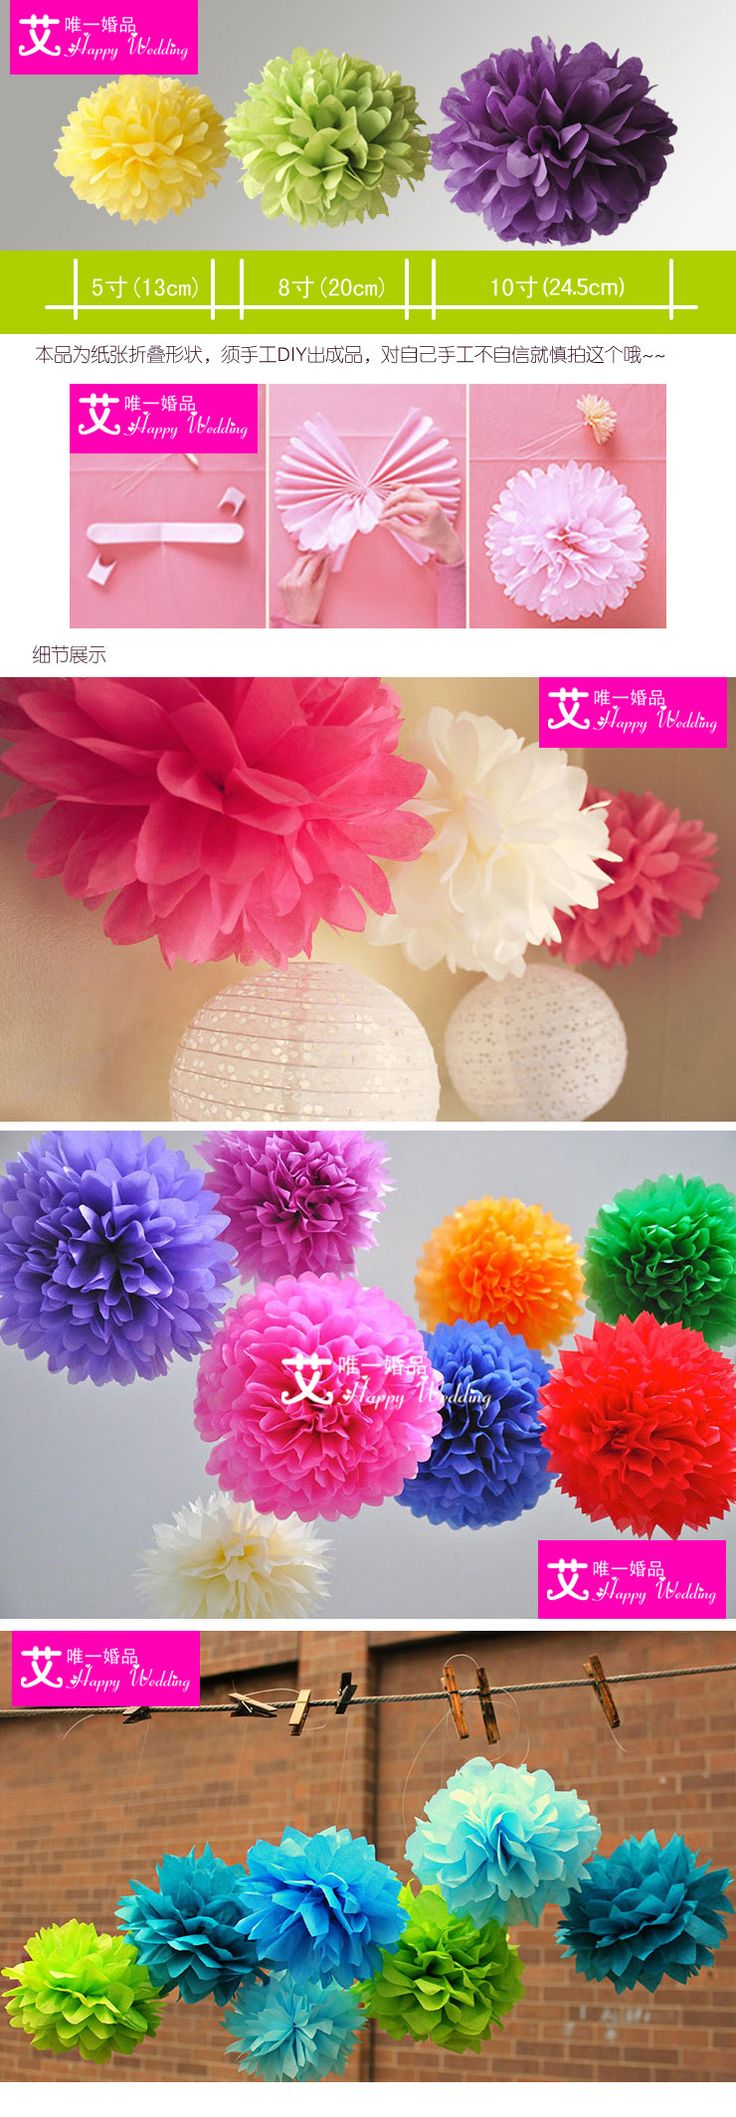 "10pcs/lot 5"" DIY Tissue Paper Pom Poms Flower Balls Wedding Party Shower Decoration-inDecorative Flowers & Wreaths from Home & Garden on Aliexpress.com"